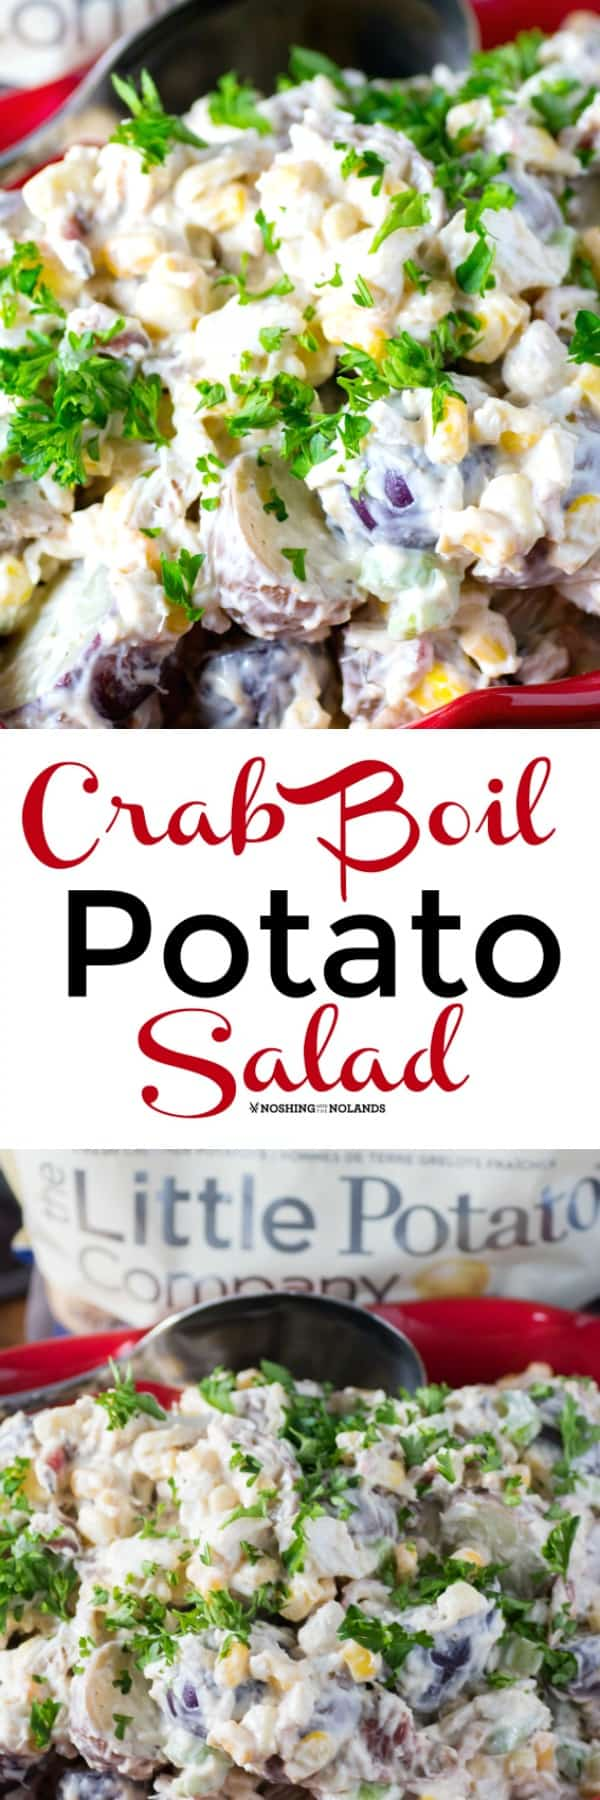 This Crab Boil Potato Salad has all the flavors of a crab boil and more. It is easy and uses simple ingredients but its rich creamy goodness is exploding with flavors. #crabboil #potatosalad